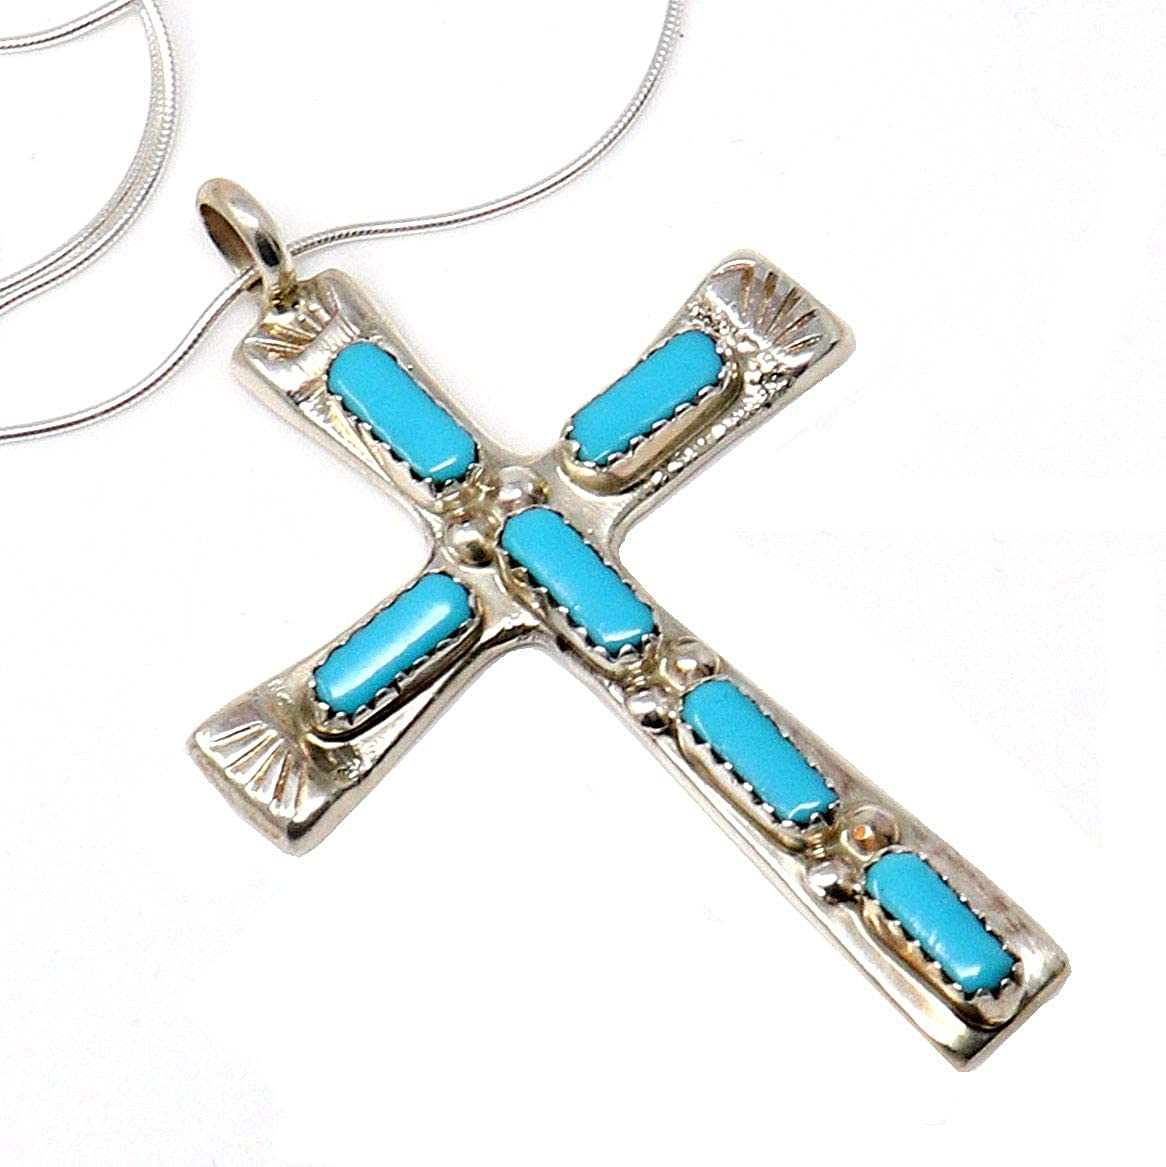 Reconstituted Turquoise Cross Pendant Sterling Silver Pendant Only